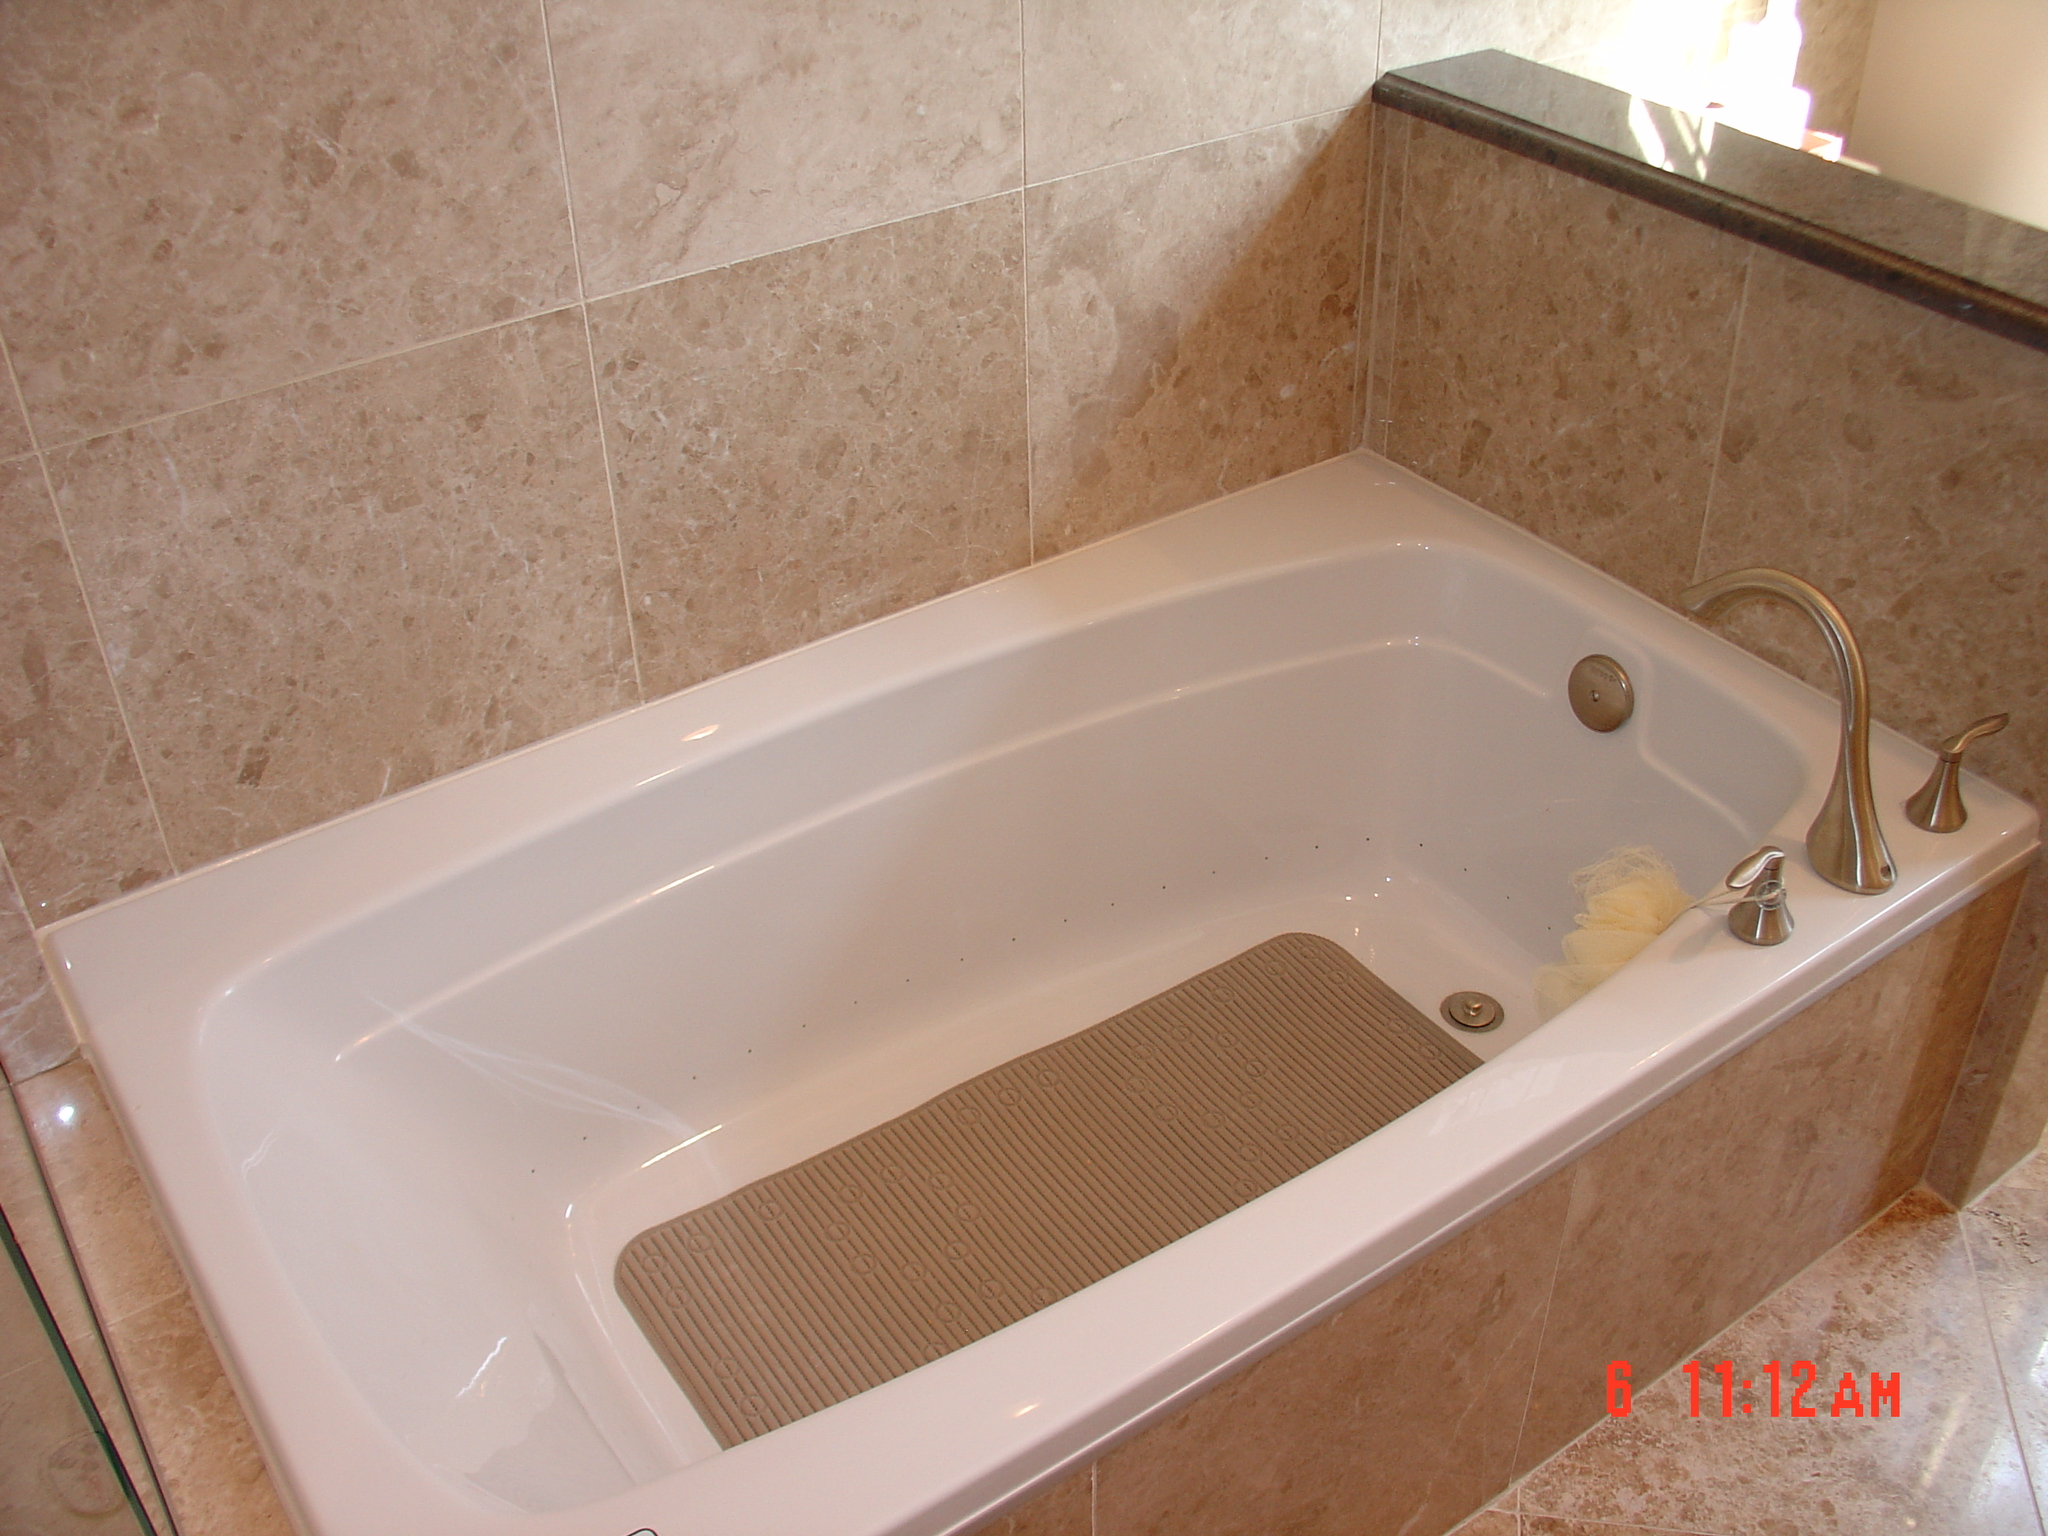 Bathroom Remodeling University bath remodeling | bathtub reglazing | bathtub liners | st louis, mo